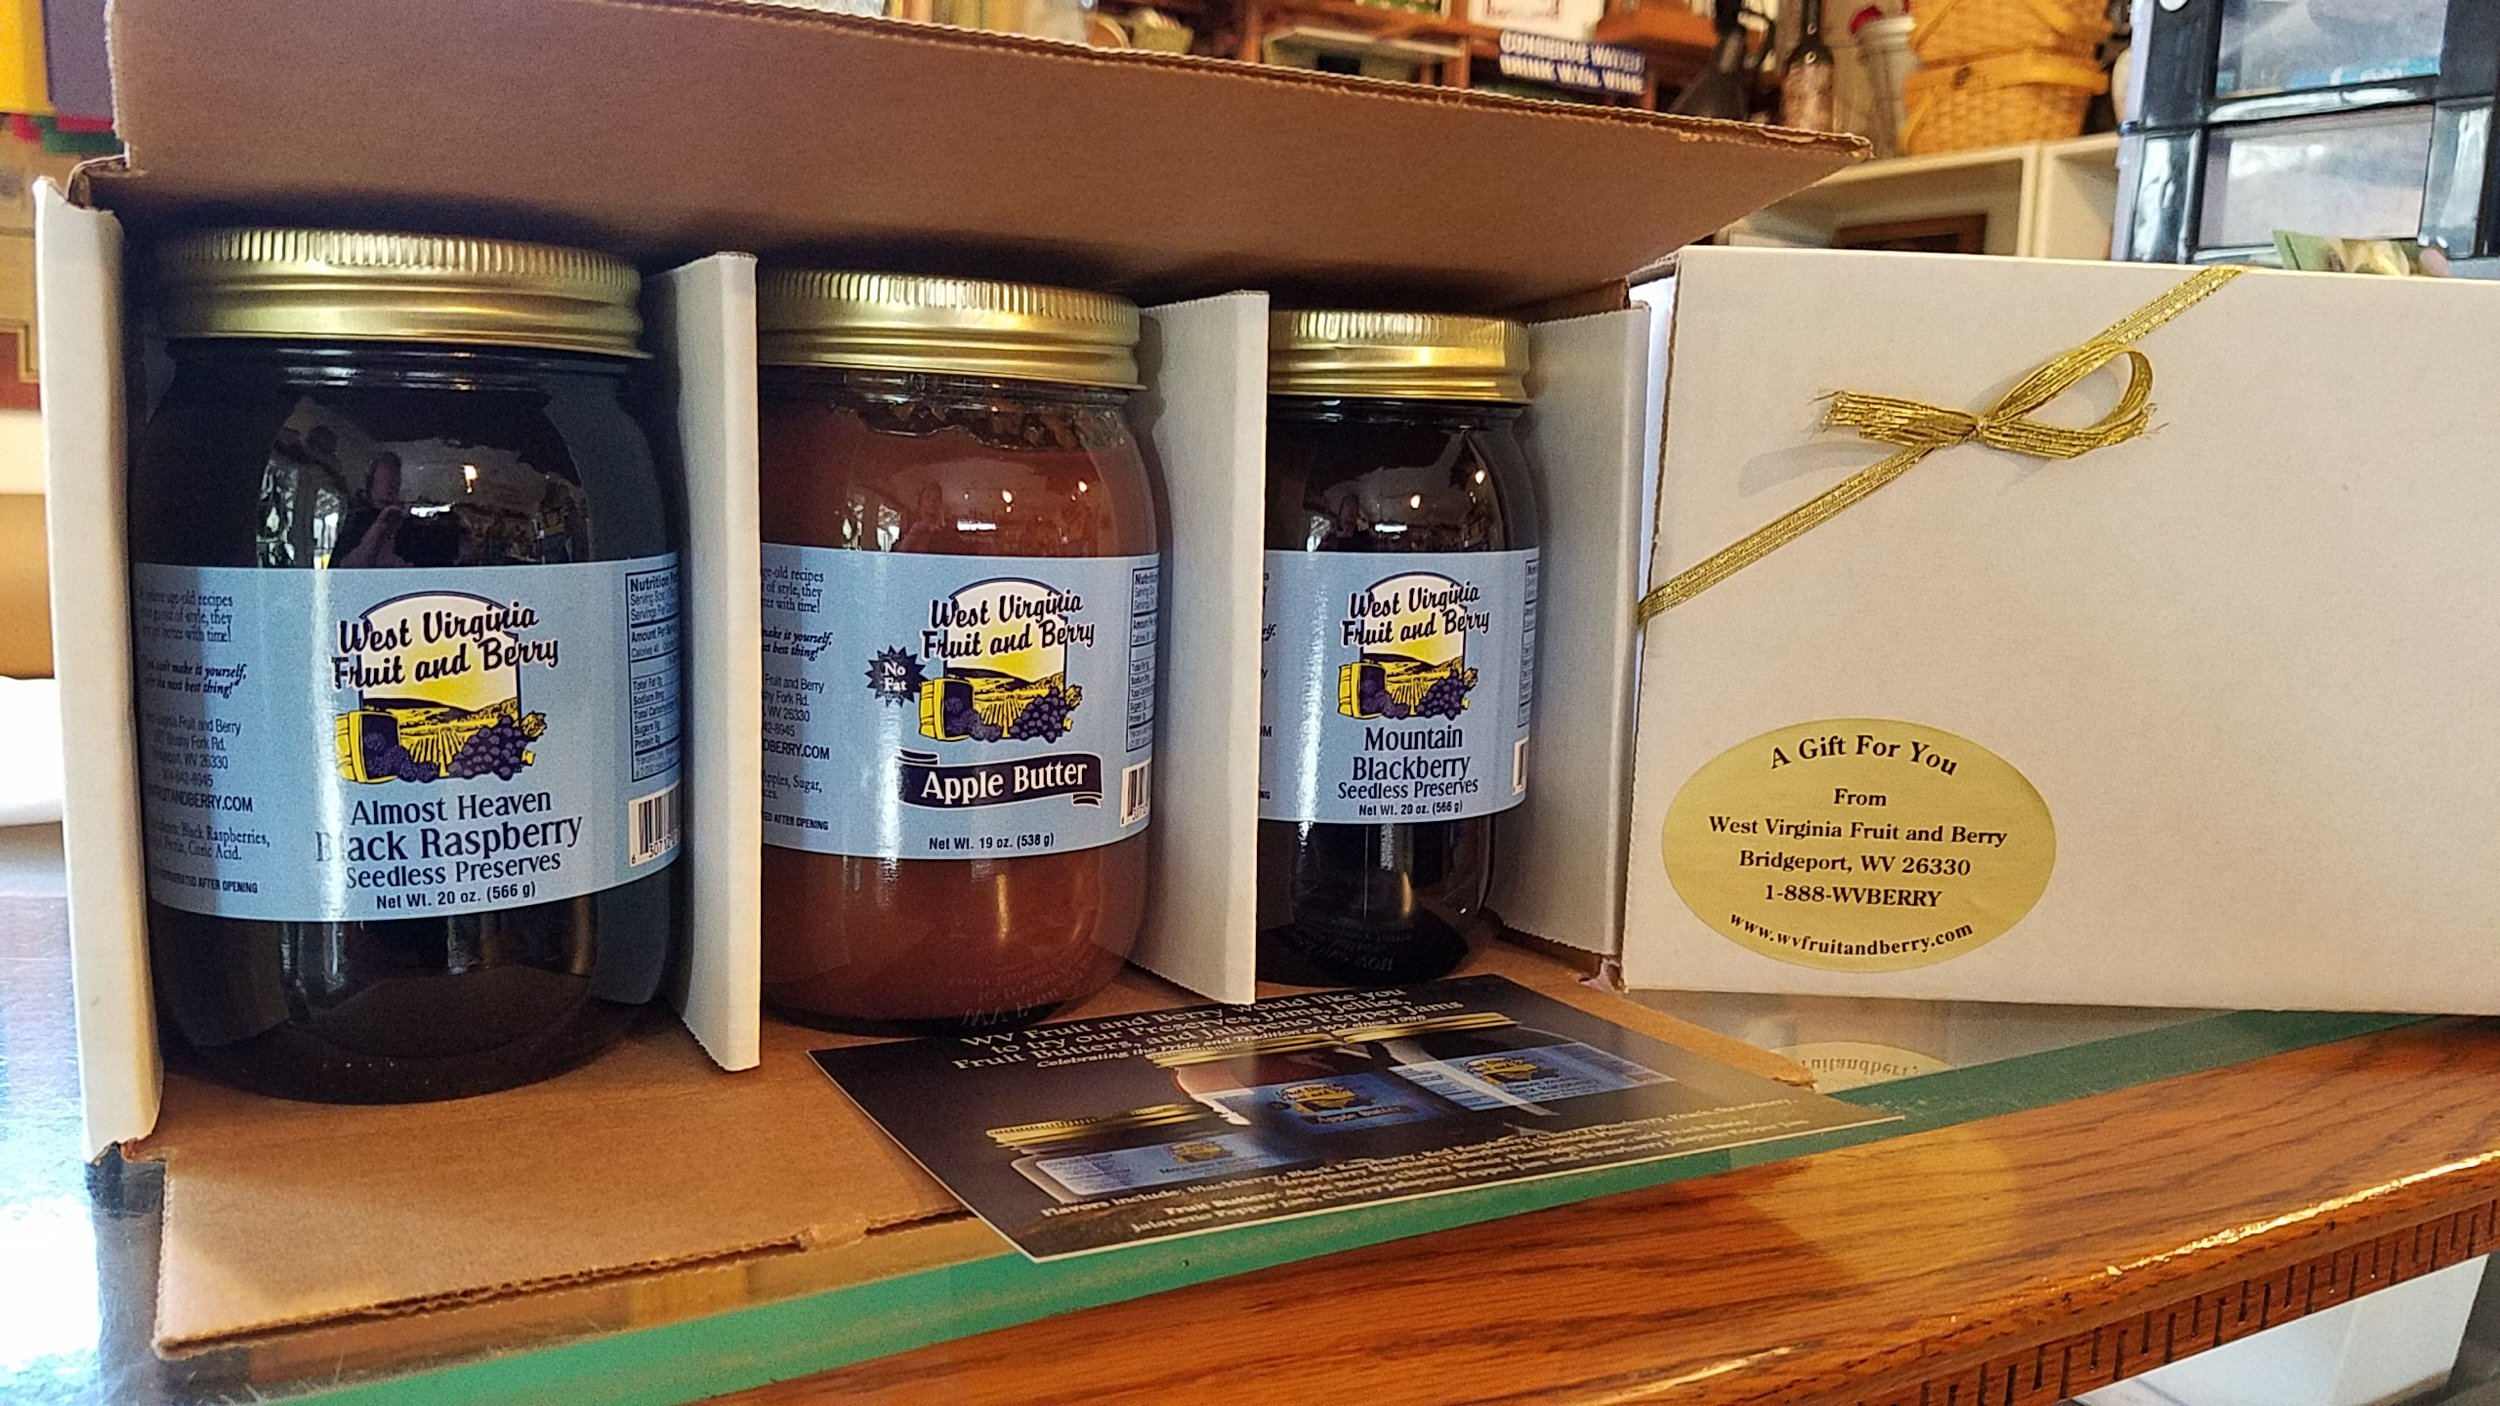 All orders shipped in 3-packs - May mix and match- up to 3 gift packs per order. Need over 9 jars? Call us to find your best shipping option! (304-842-8945)